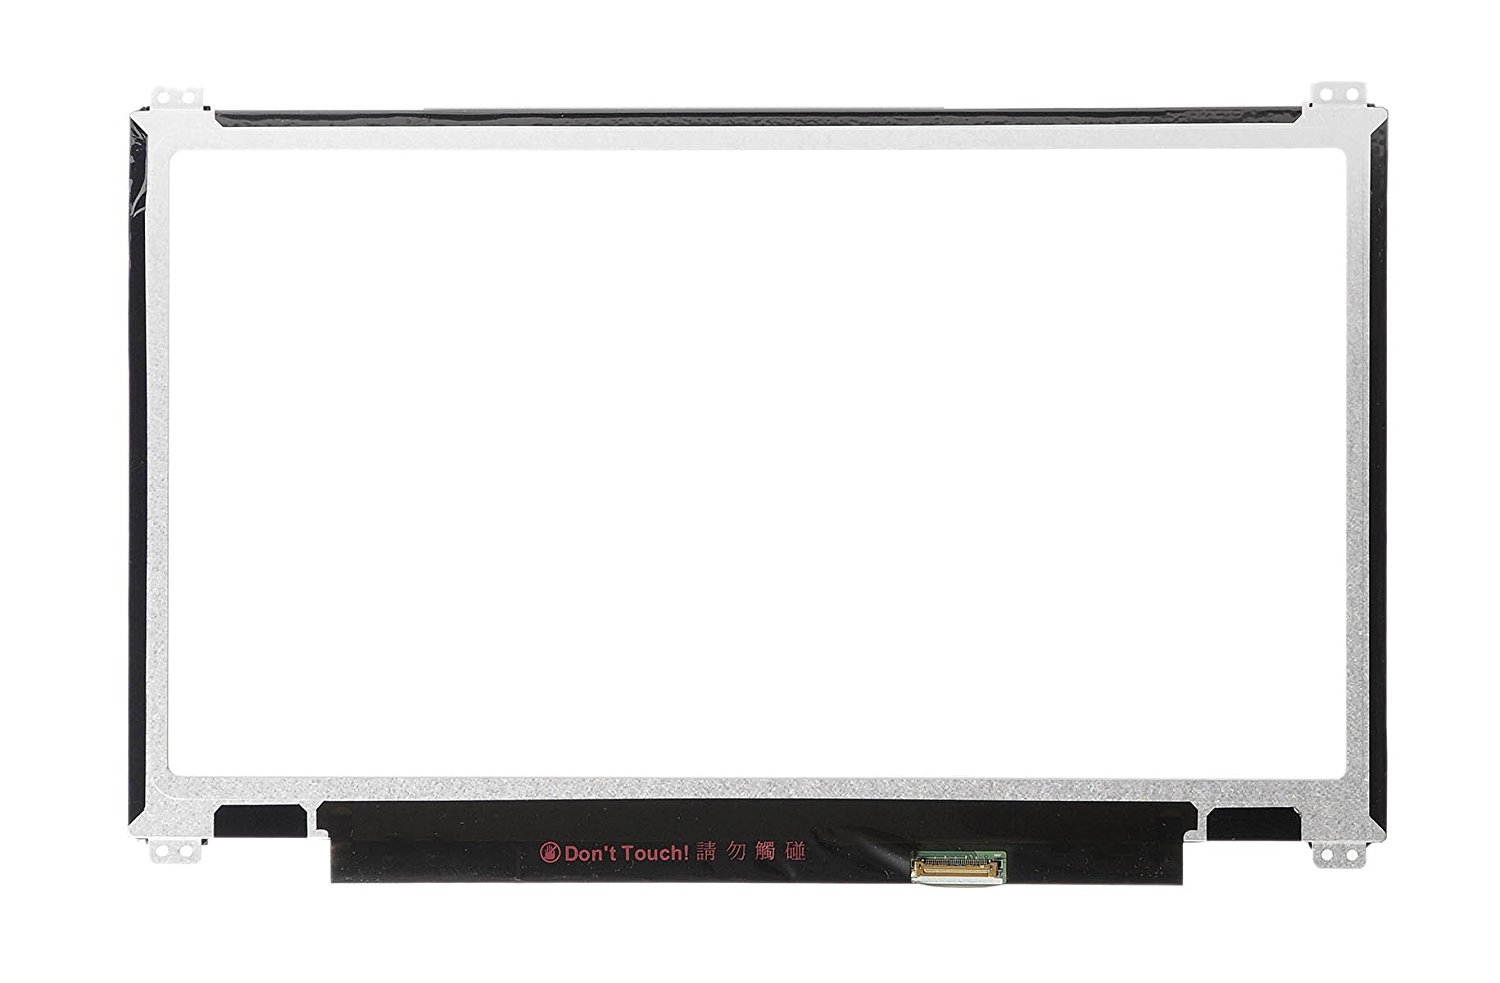 13 3 Replacement LED Screen Display Panel for ASUS Chromebook C300